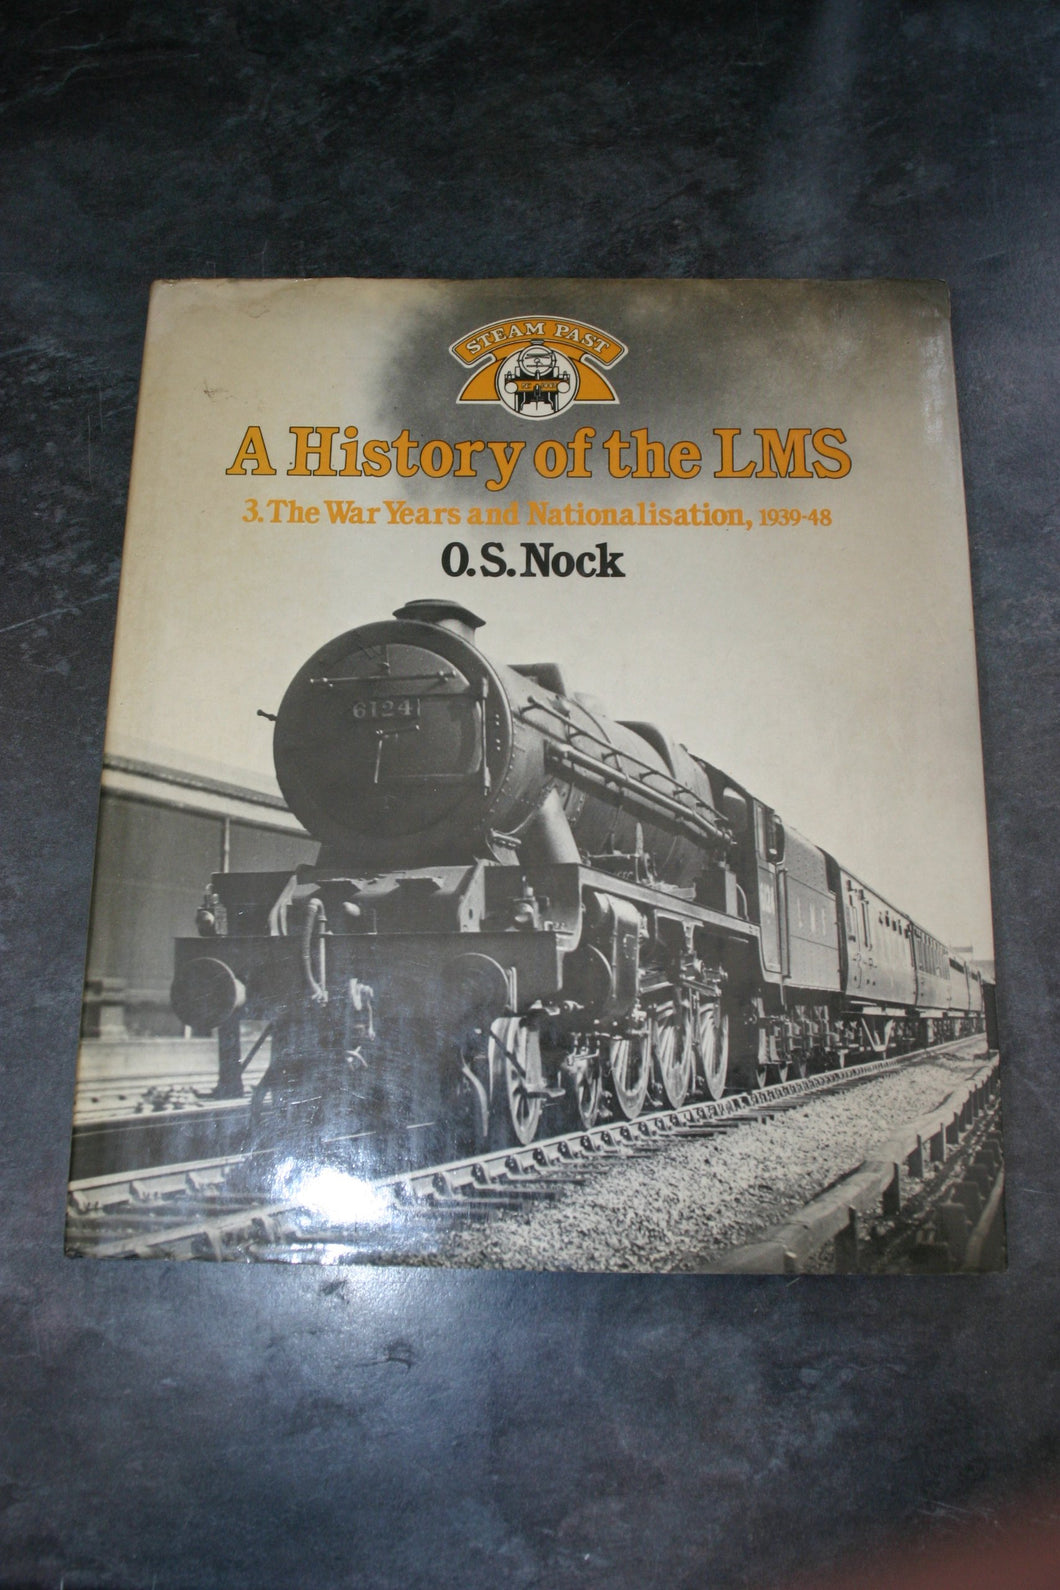 A History of the LMS London, Midland and Scottish Railway, Volume 3: The War Years and Nationalisation, 1939-48 (Steam Past Series): 3 Nock, O. S.